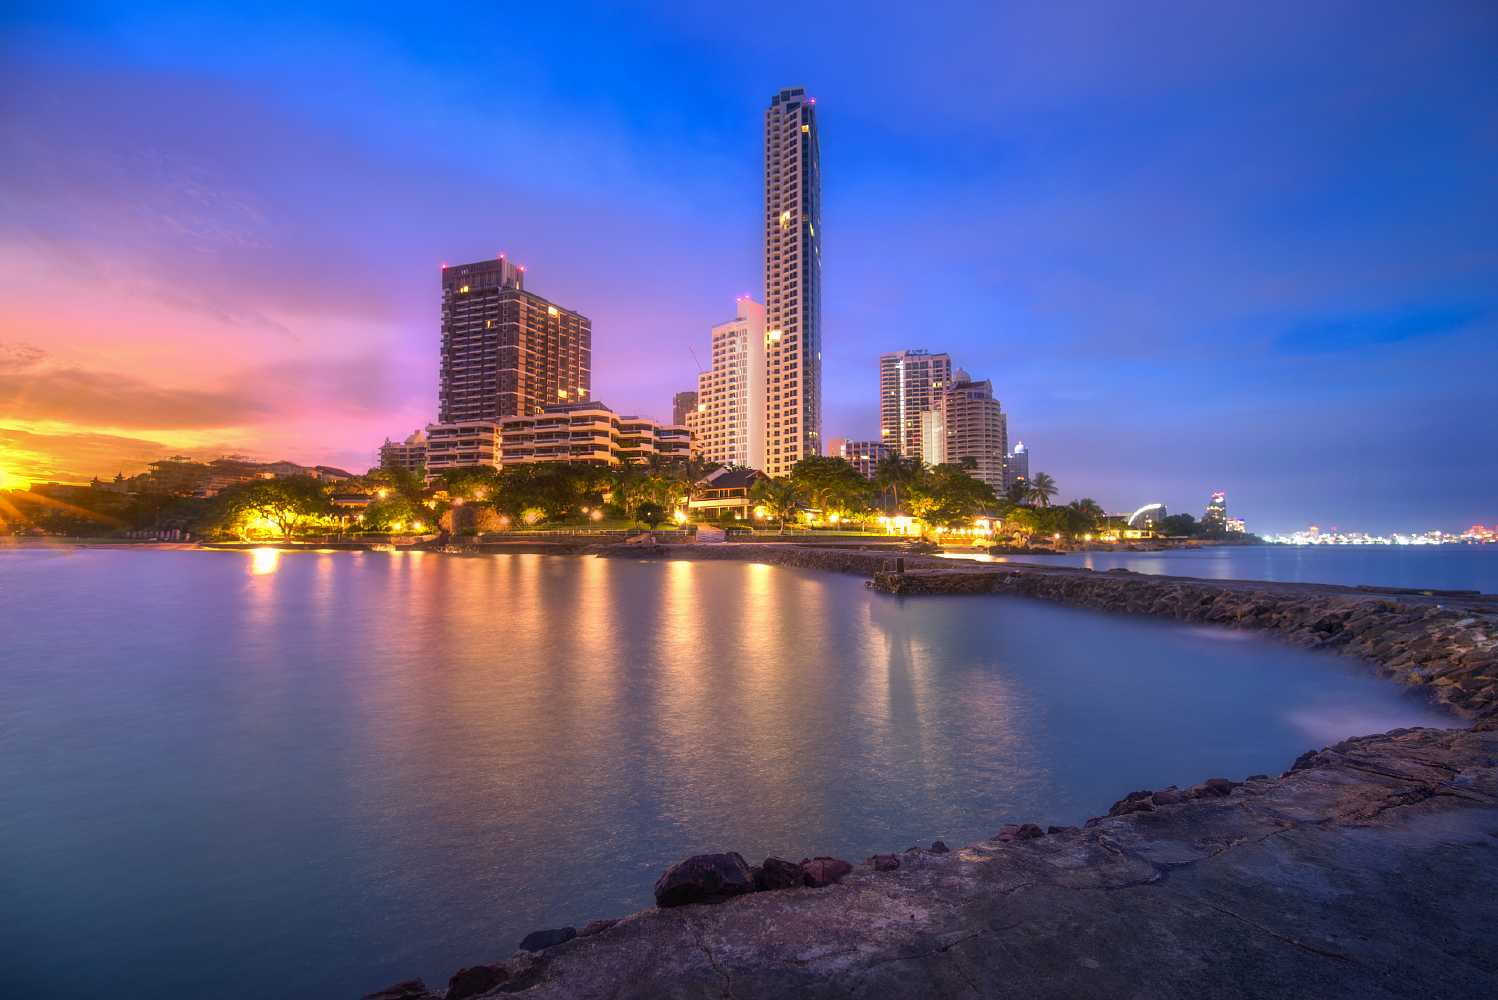 Wong Amat Beach, view from pier of sun and tall buildings